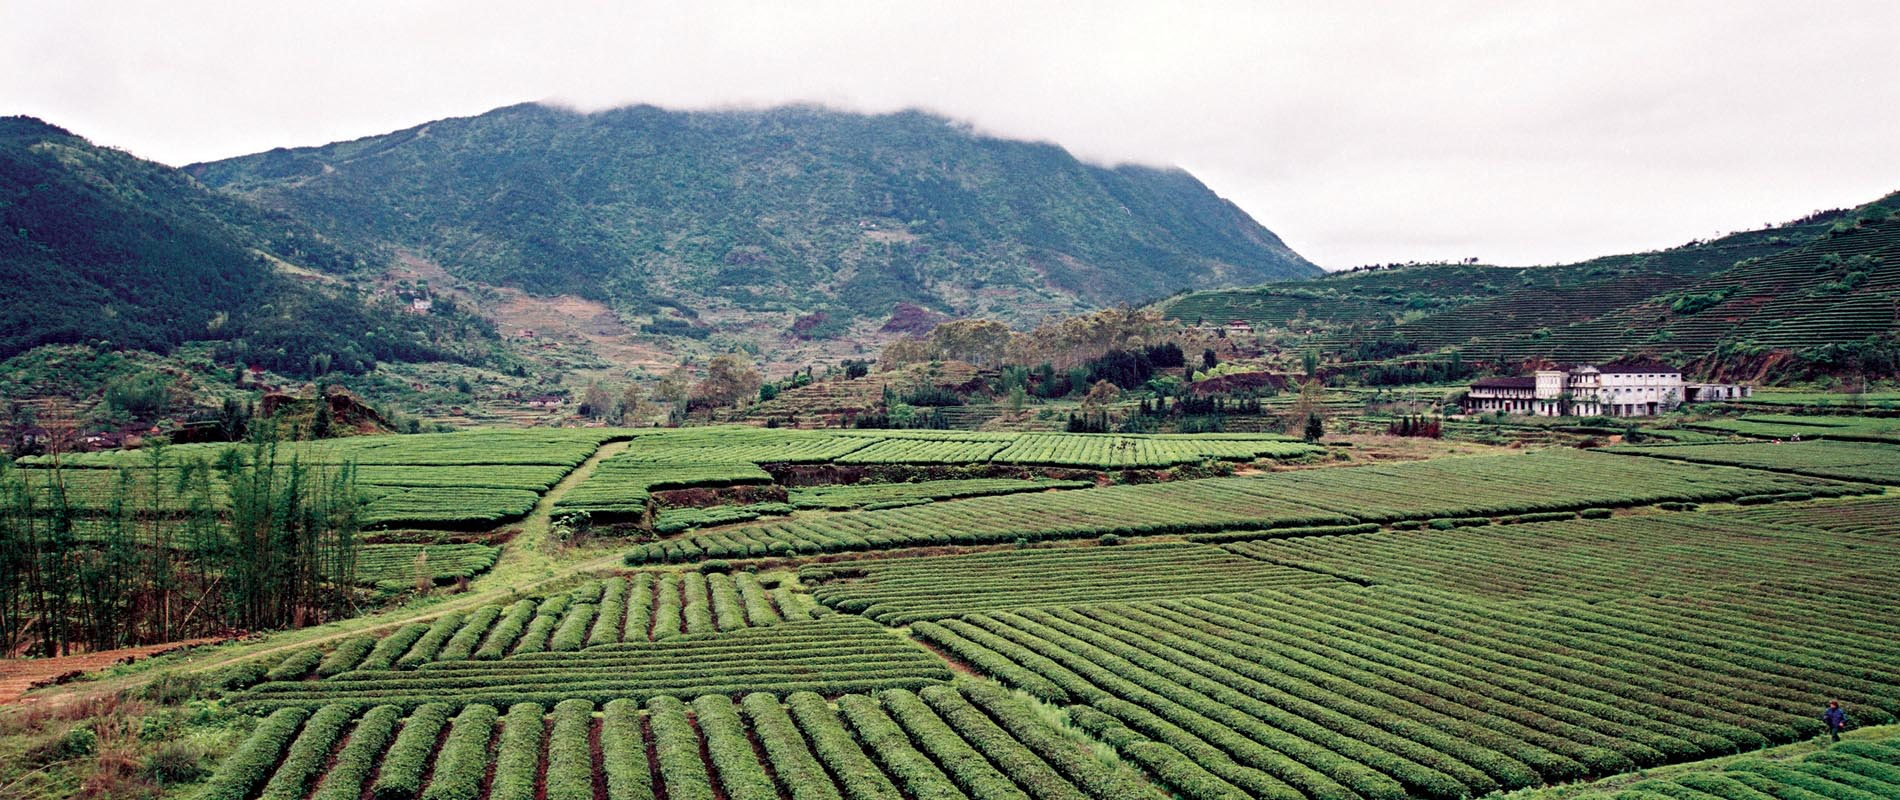 Oolong Tea Gardens in Fujian